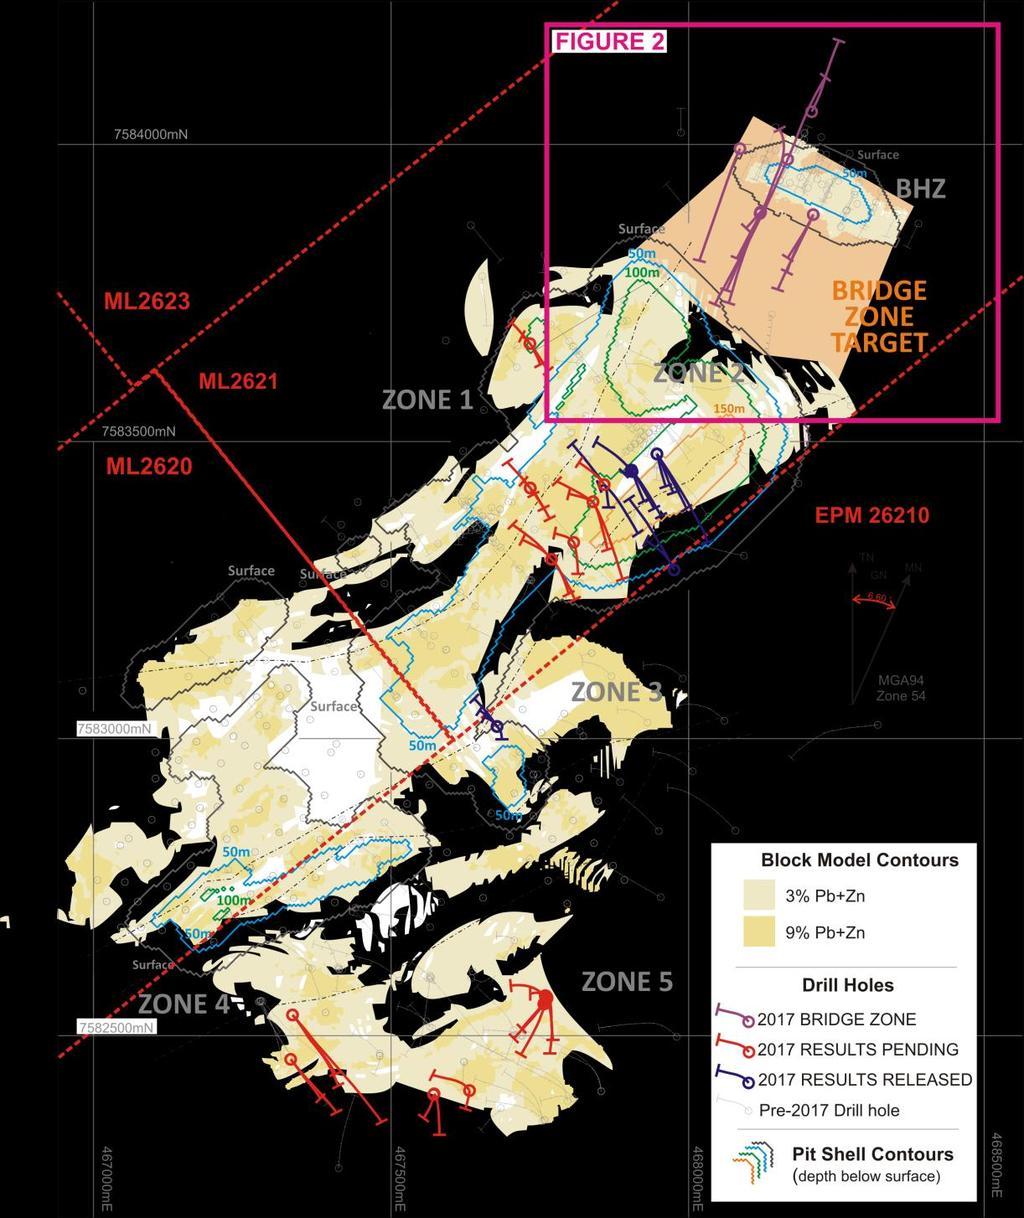 Pegmont Exploration Drilling Further exploration holes are planned as part of the 2017 drilling program, including the Copper target to the south west of Pegmont, where previous Vendetta drilling